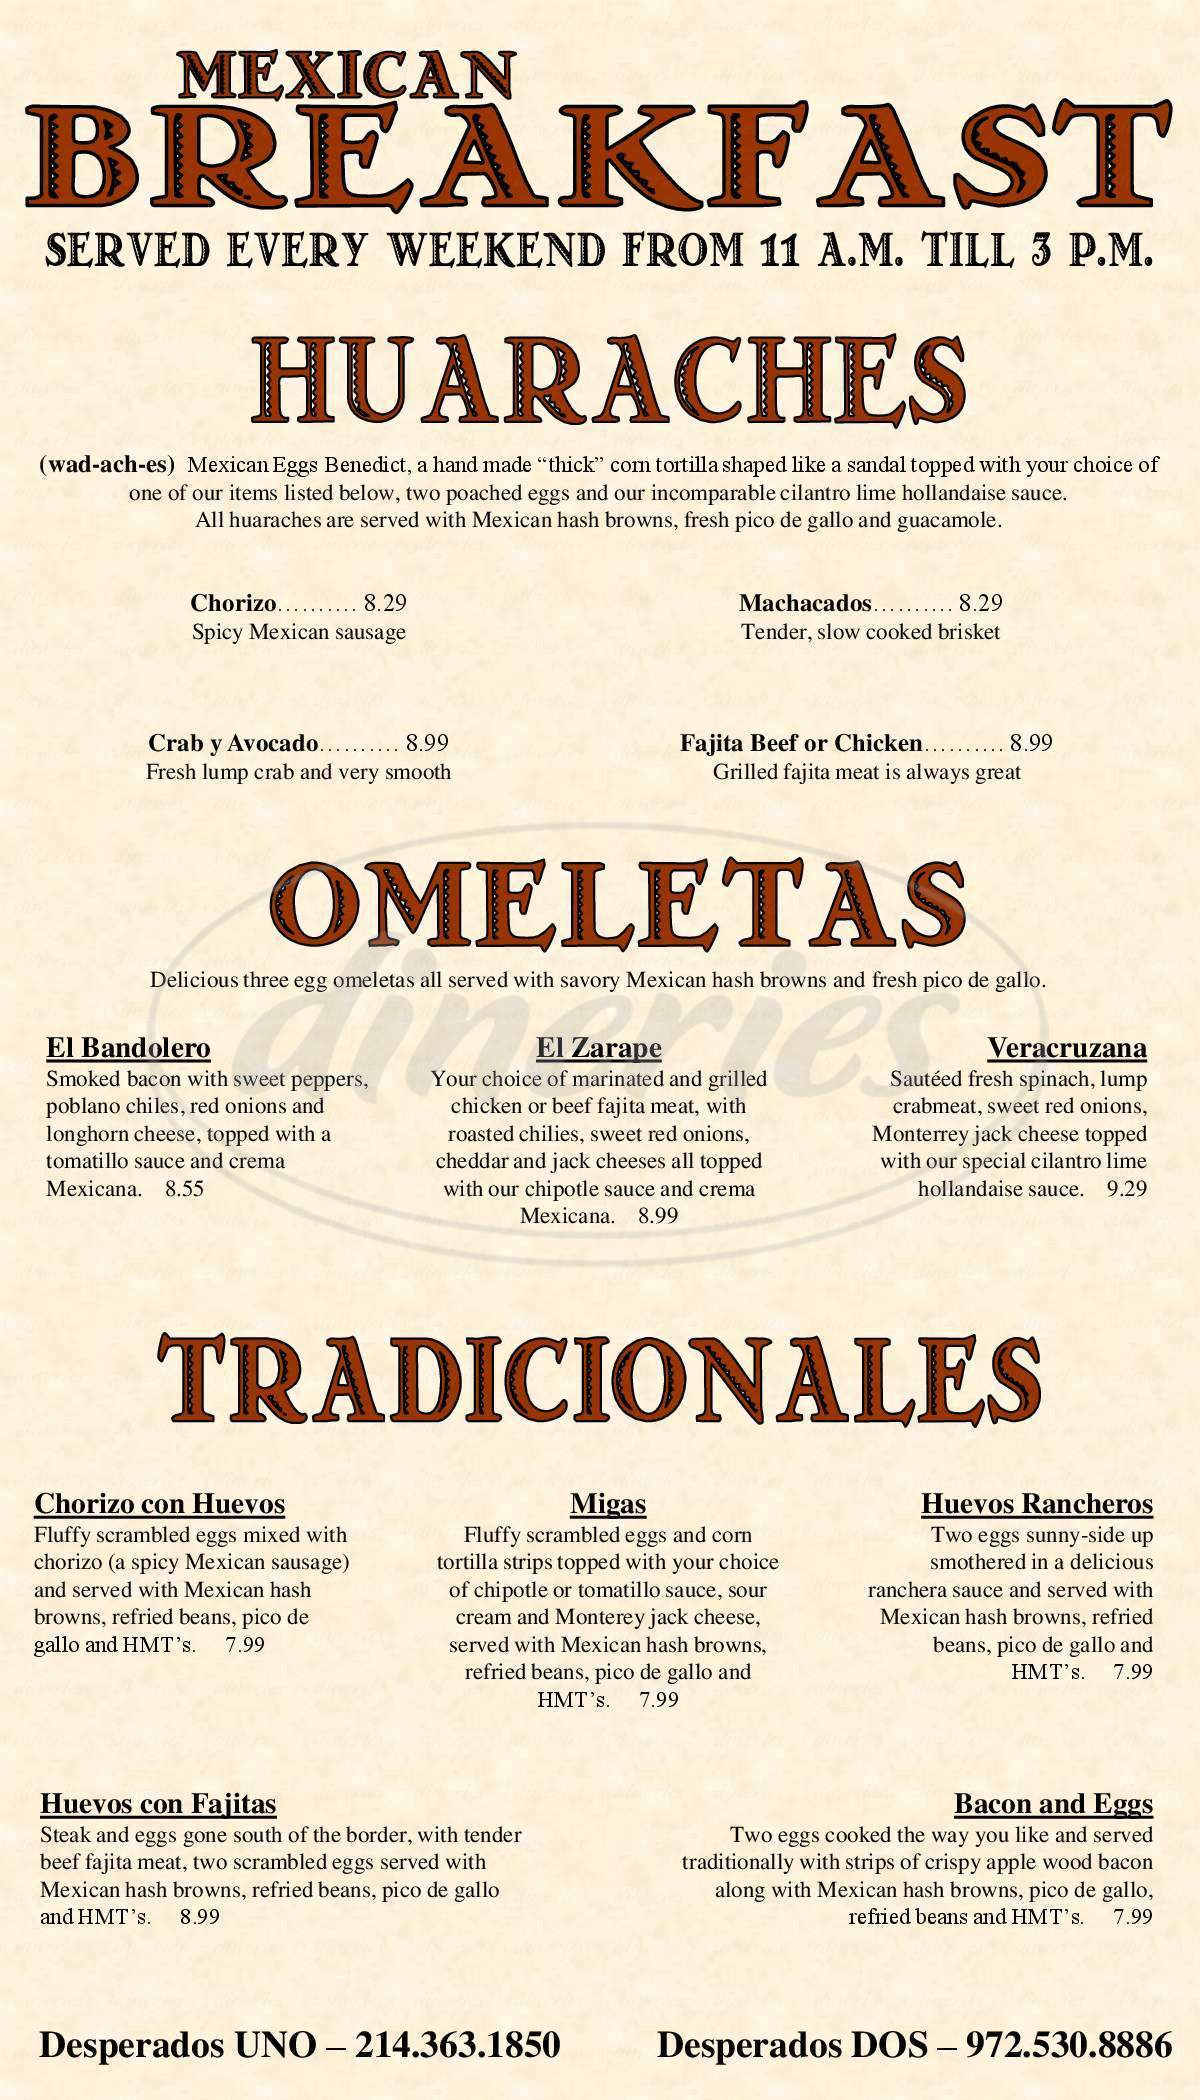 menu for Desperados Mexican Restaurant